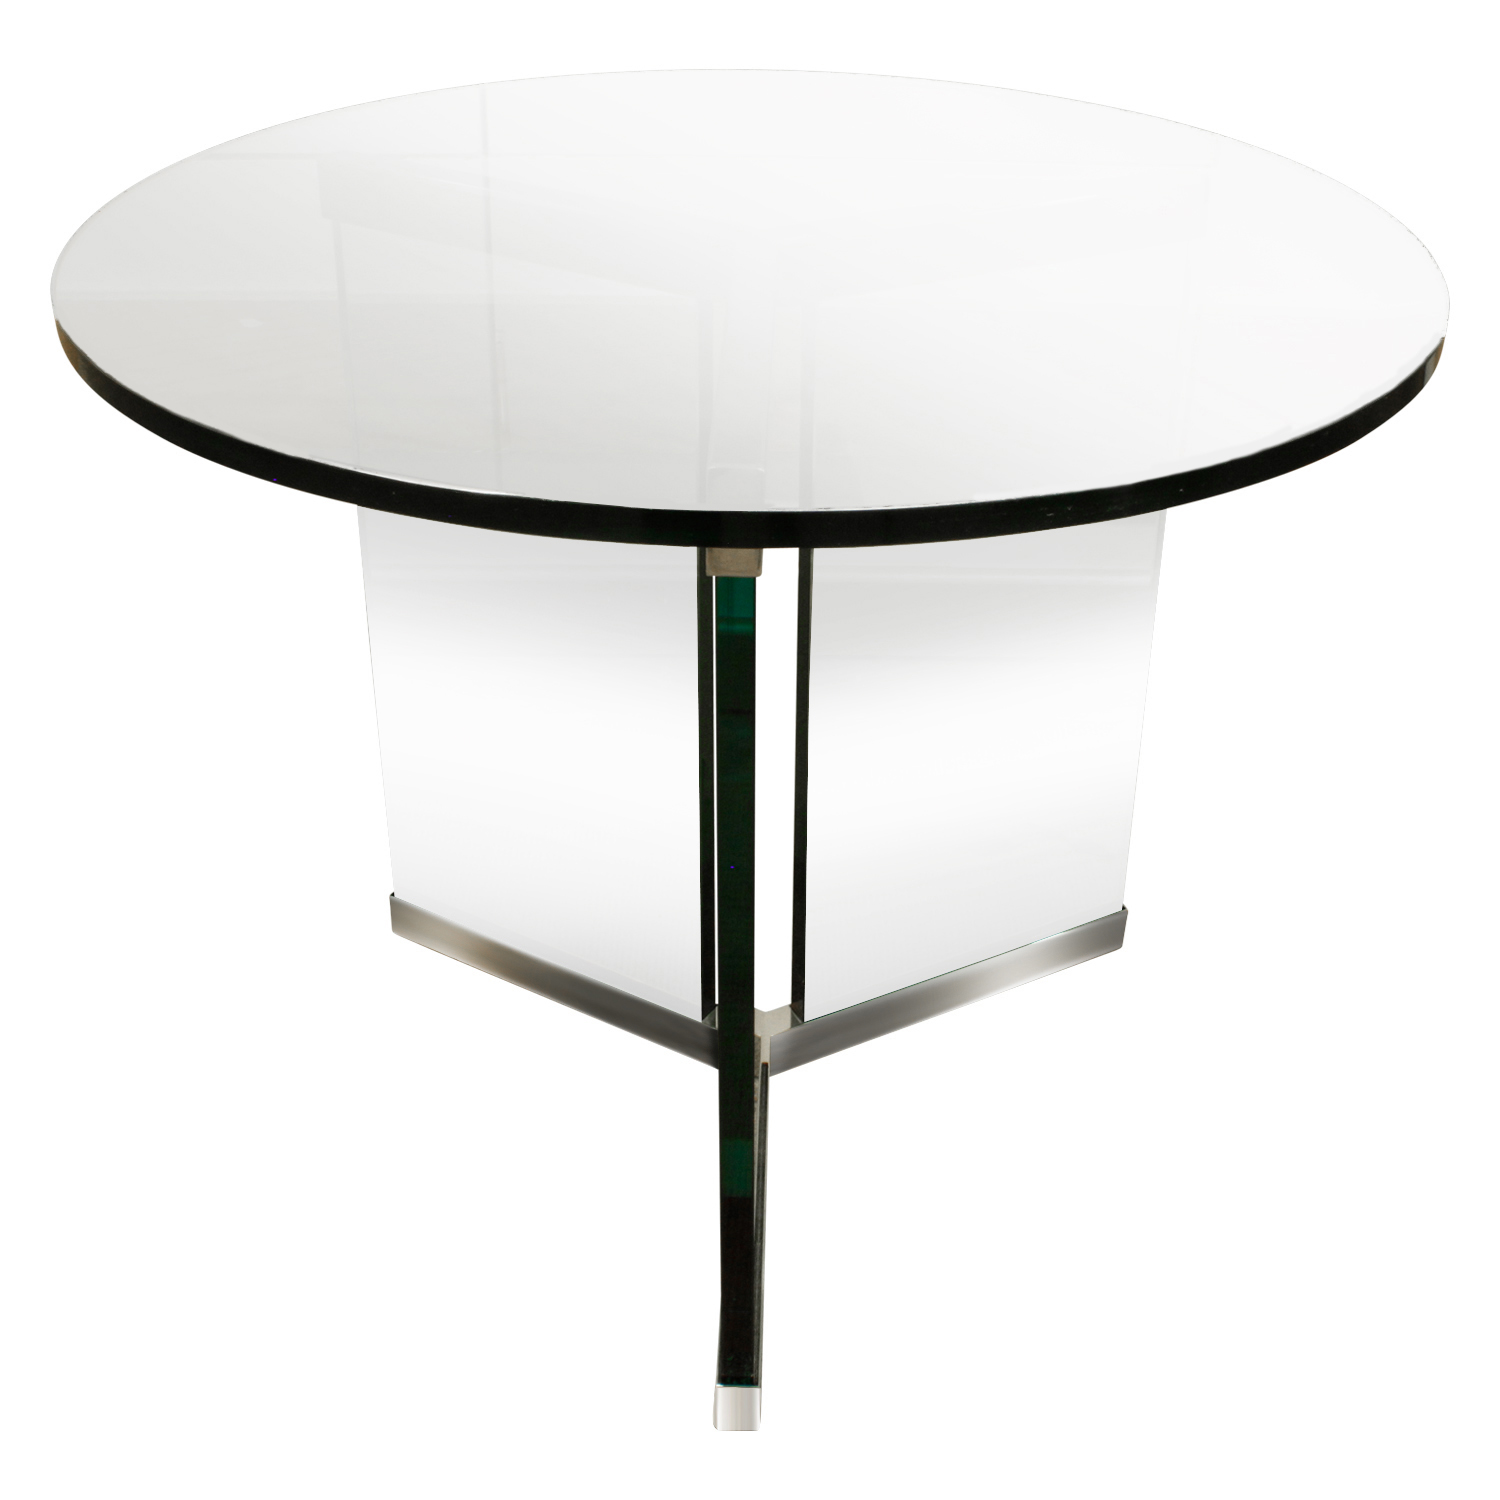 Pace 65 thickglass+chrome endtable183 sde.JPG